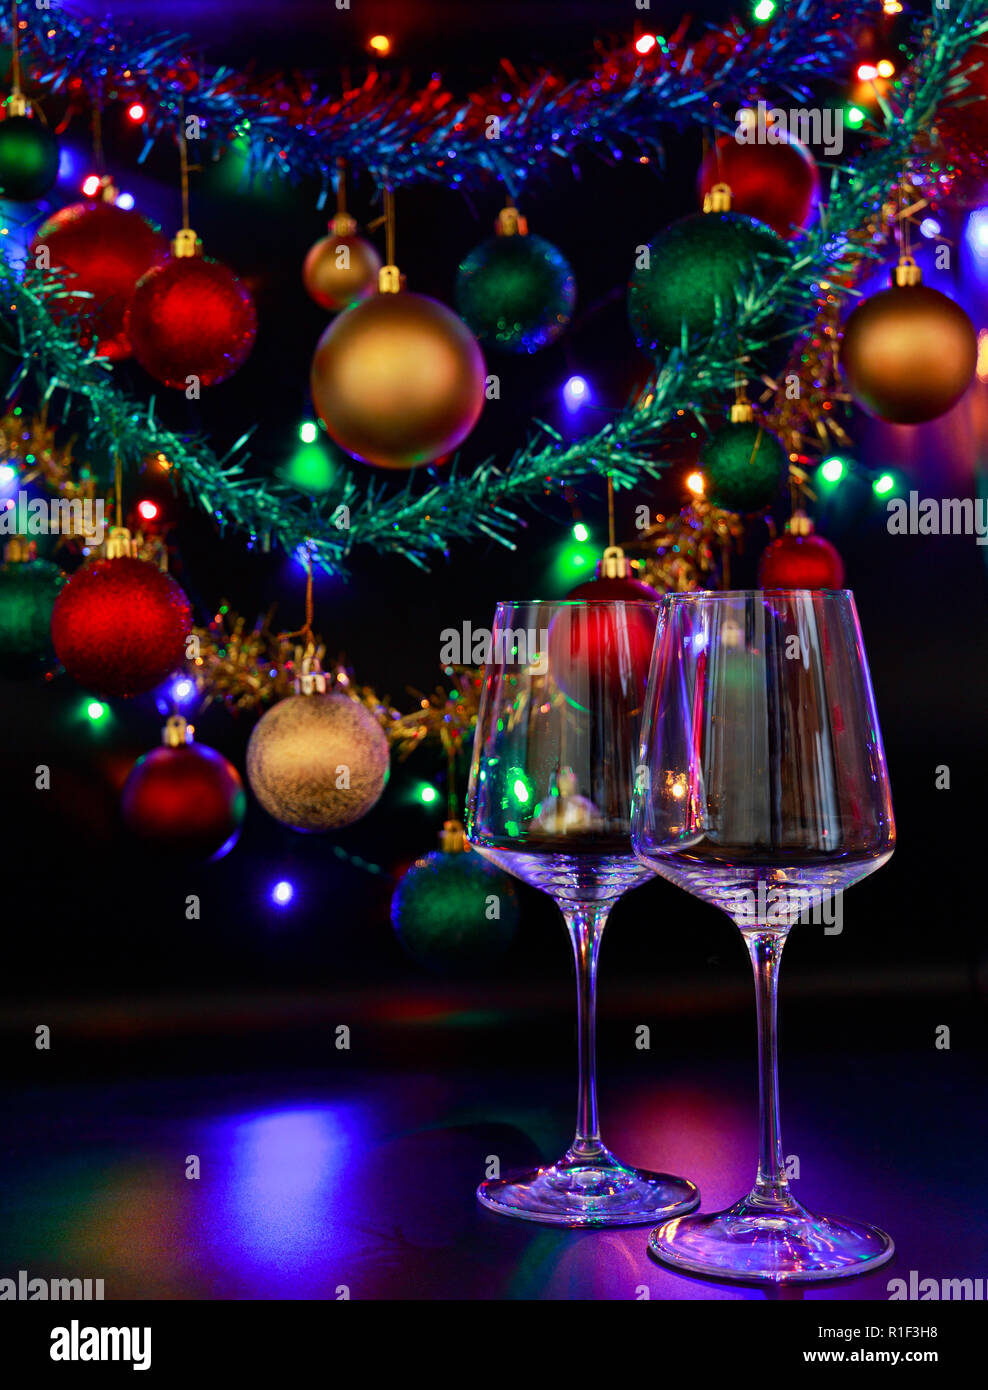 Colorful Christmas Lights Background.Two Wine Glasses Against A Background Of Colorful Christmas